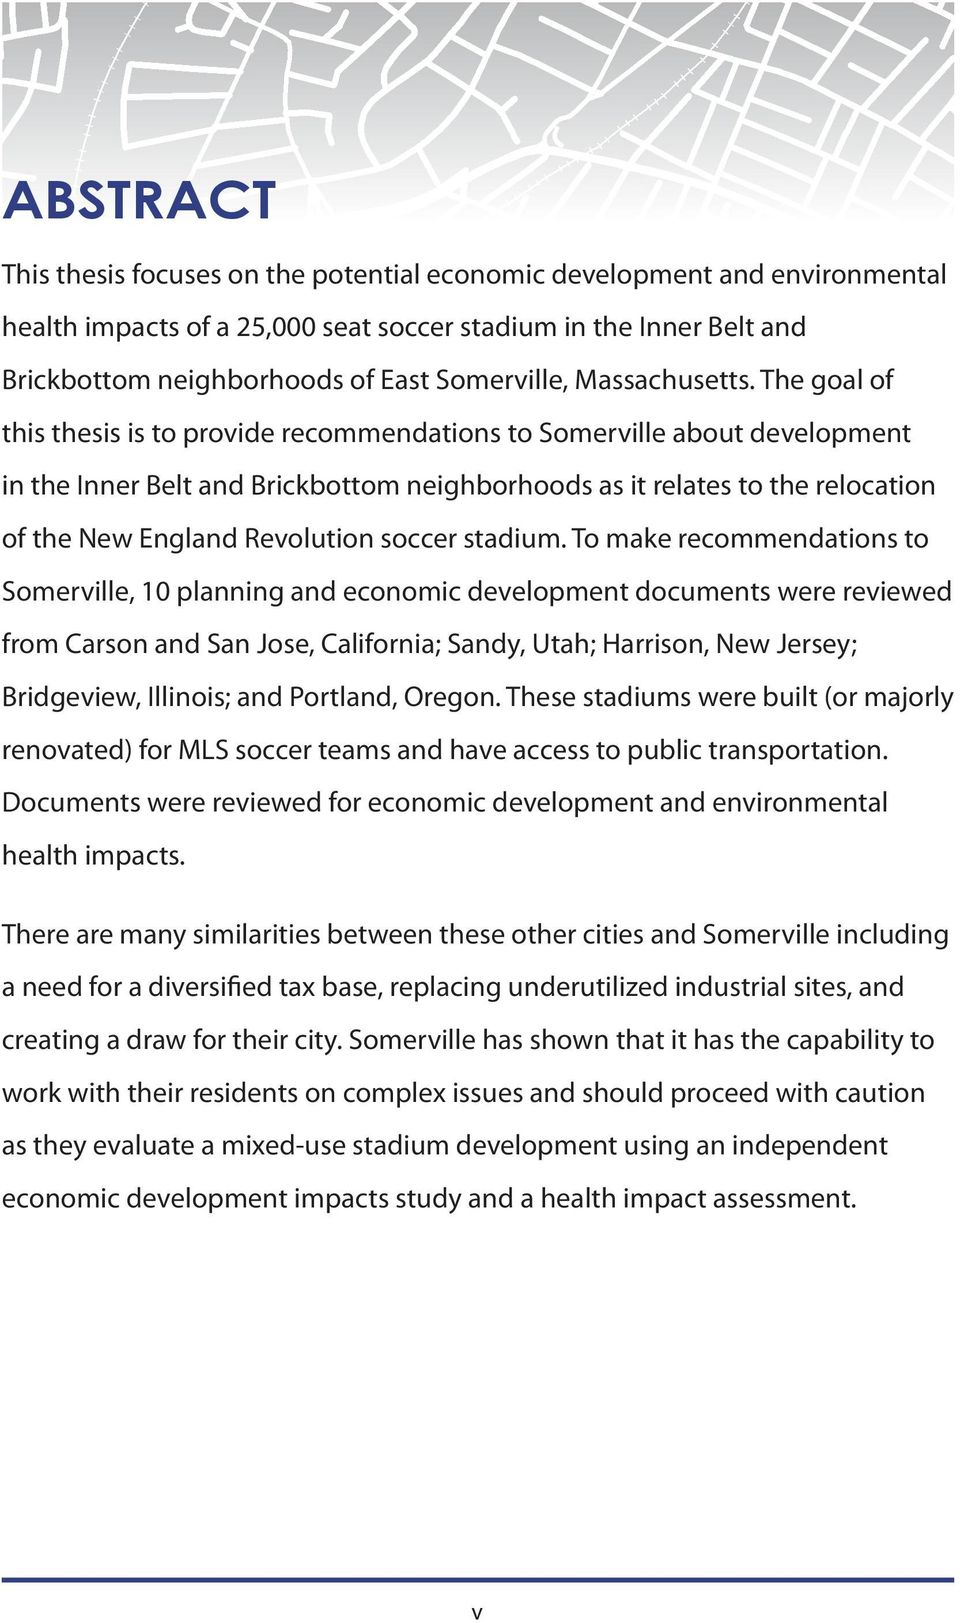 The goal of this thesis is to provide recommendations to Somerville about development in the Inner Belt and Brickbottom neighborhoods as it relates to the relocation of the New England Revolution